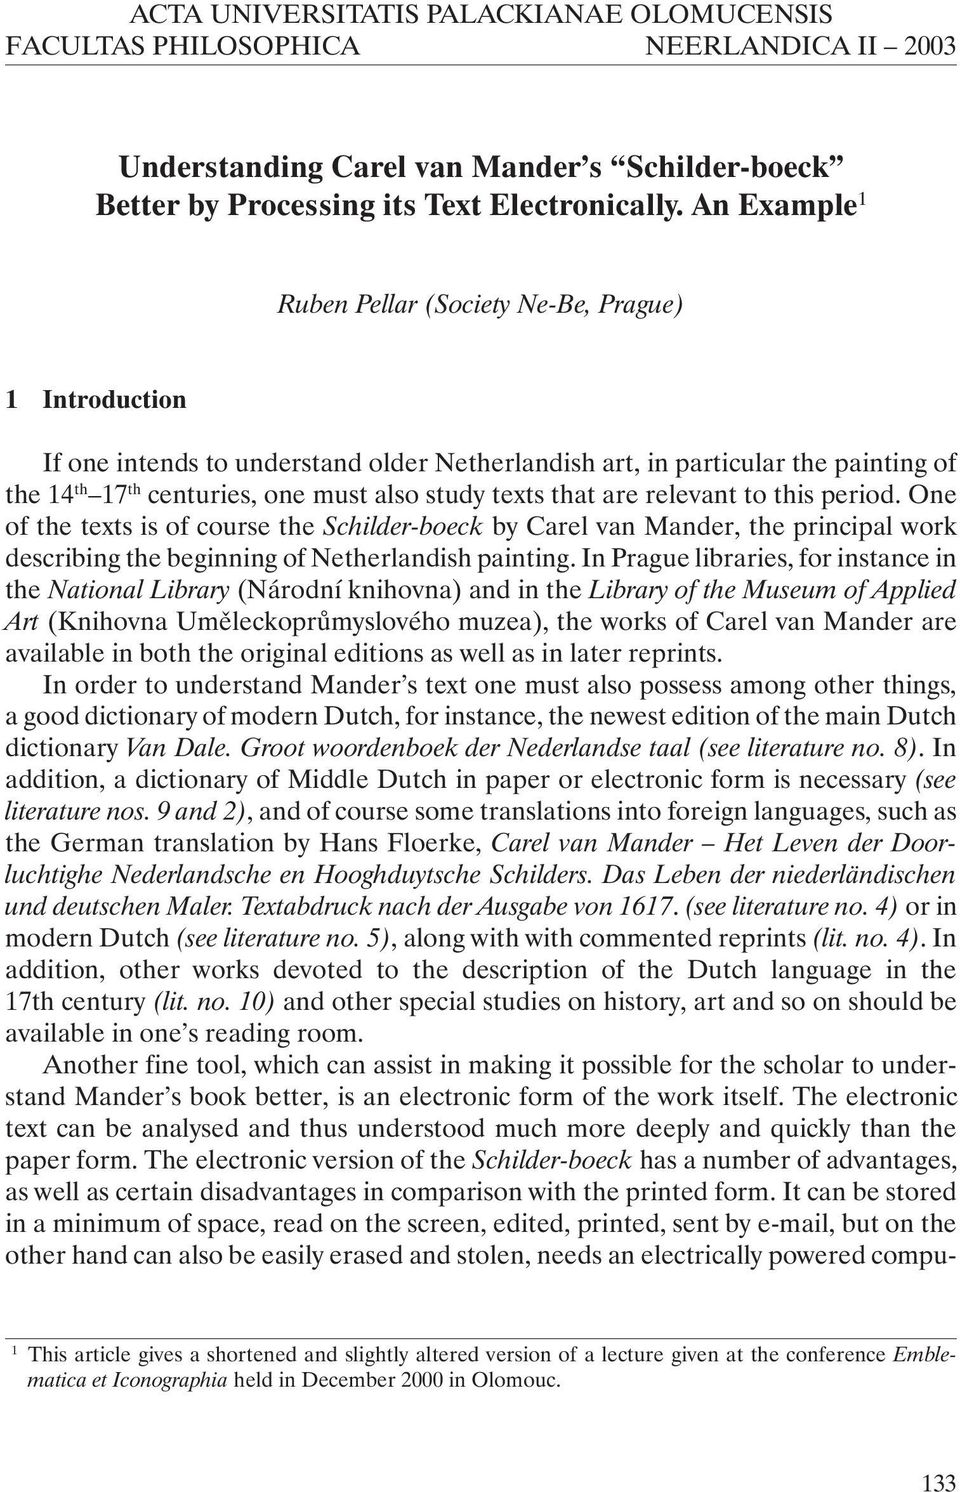 texts that are relevant to this period. One of the texts is of course the Schilder-boeck by Carel van Mander, the principal work describing the beginning of Netherlandish painting.